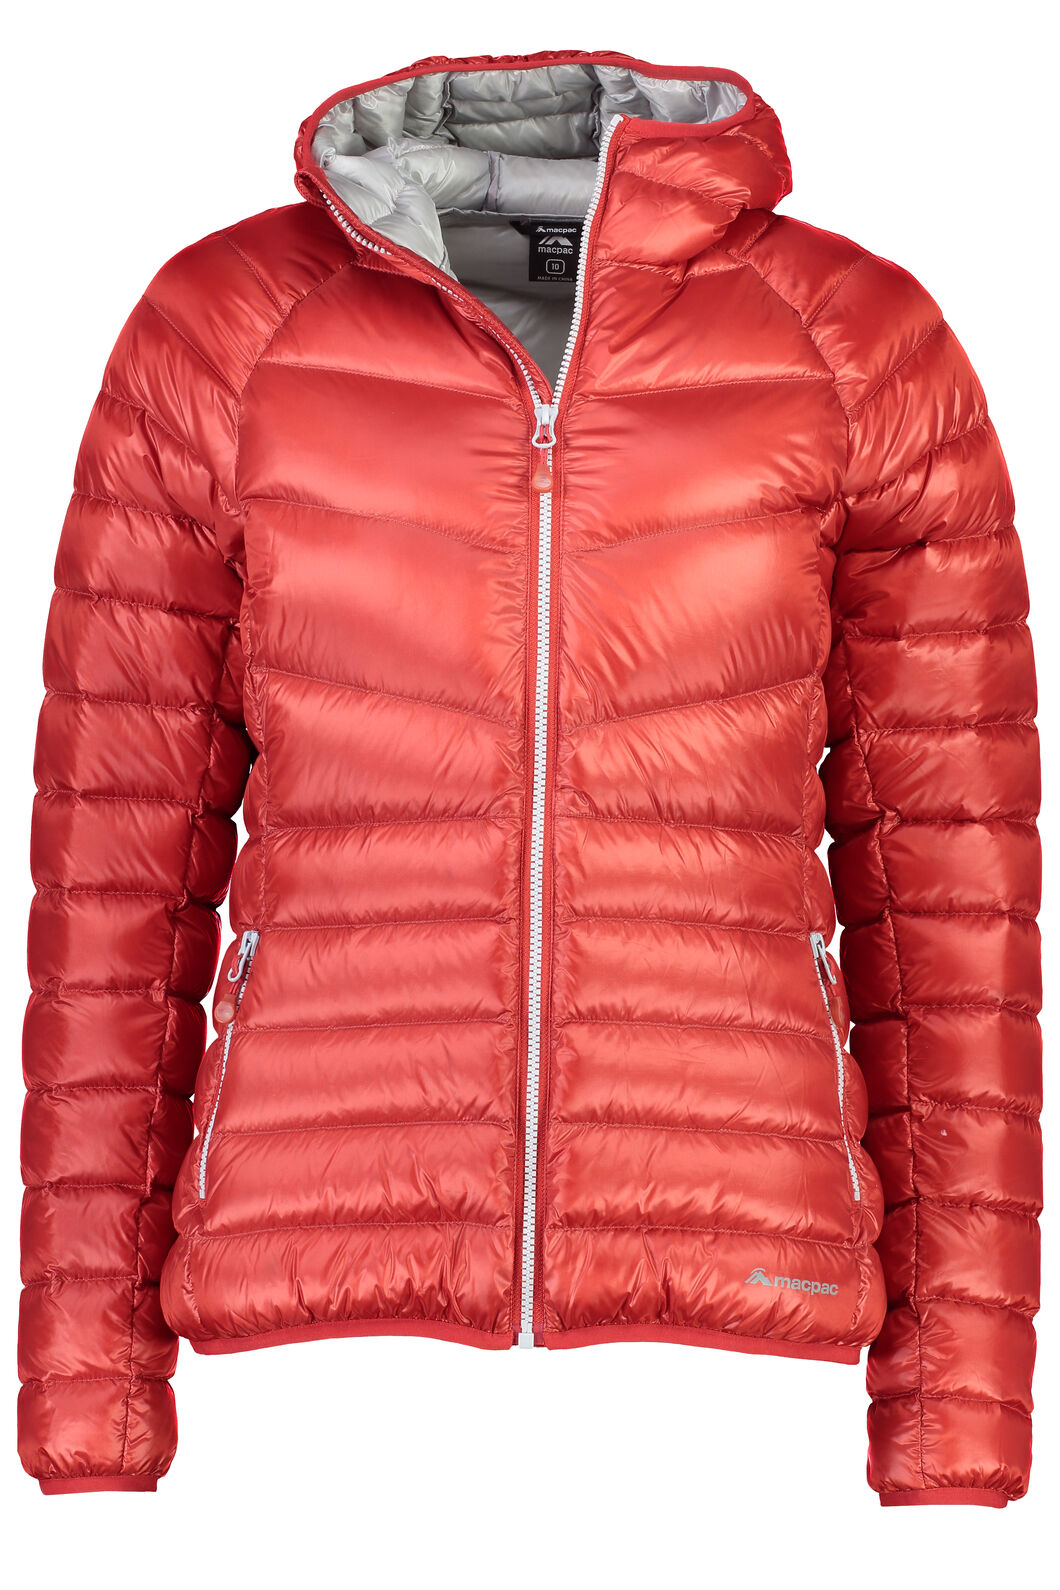 Macpac Mercury Down Jacket - Women's, Pompeian, hi-res